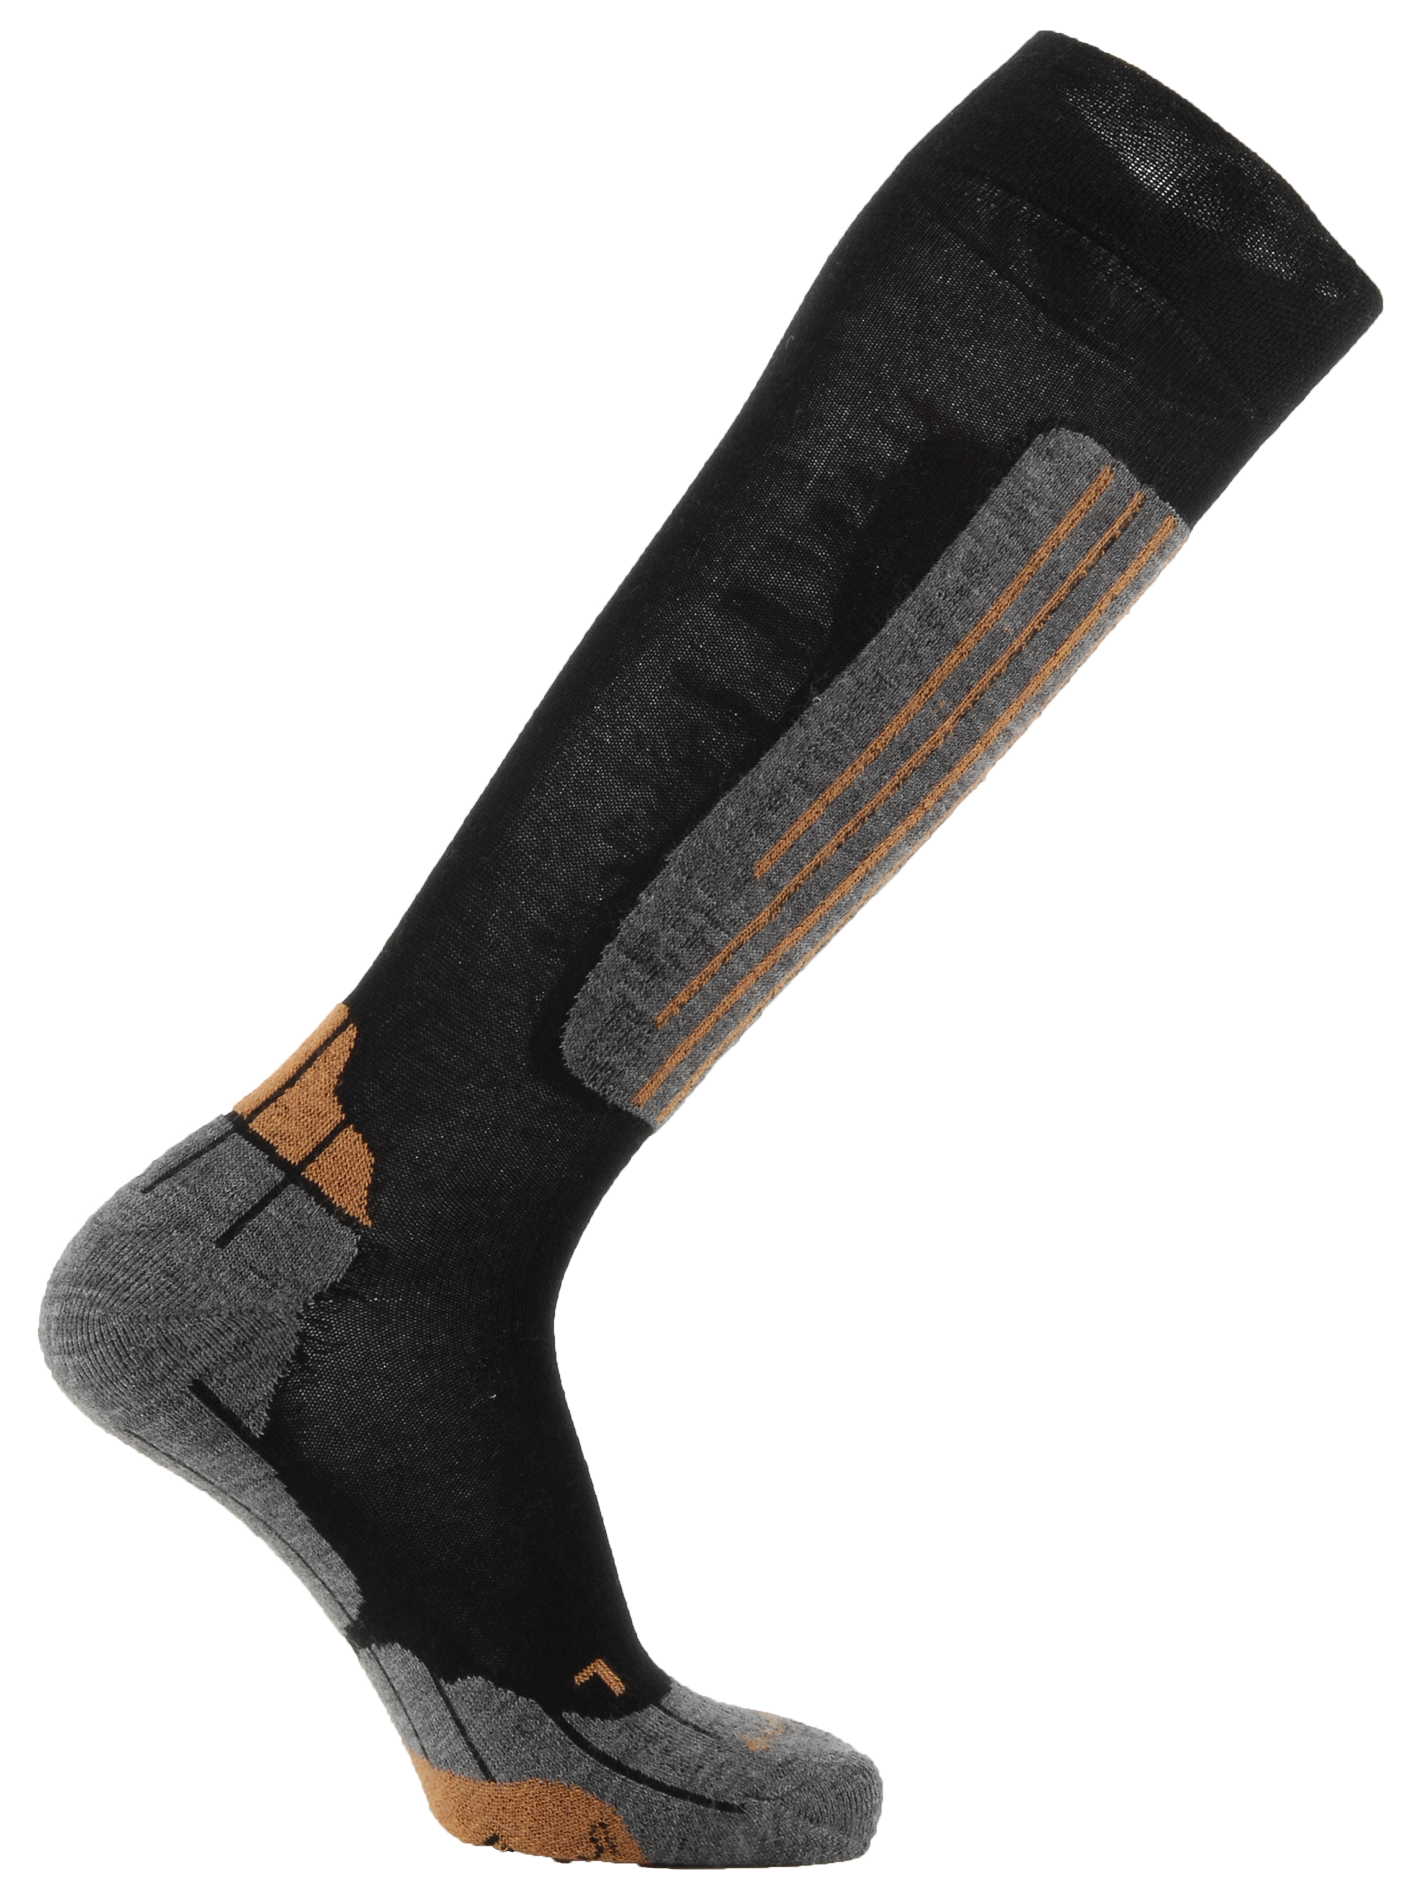 Horizon Chamonix Thermolite Ski Sock